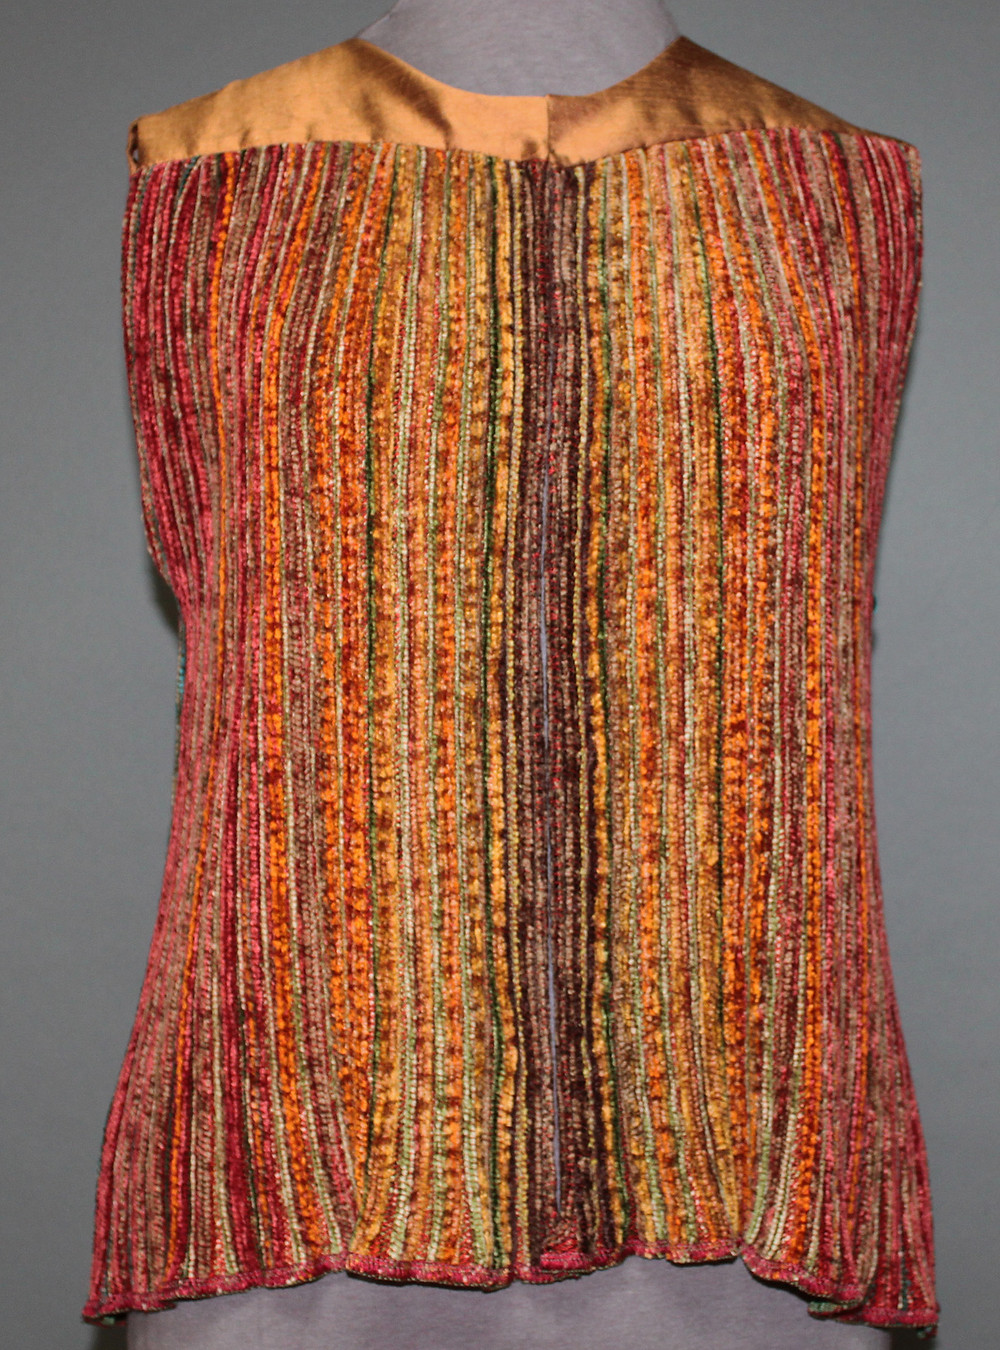 pleated vest by Teena Tuenge